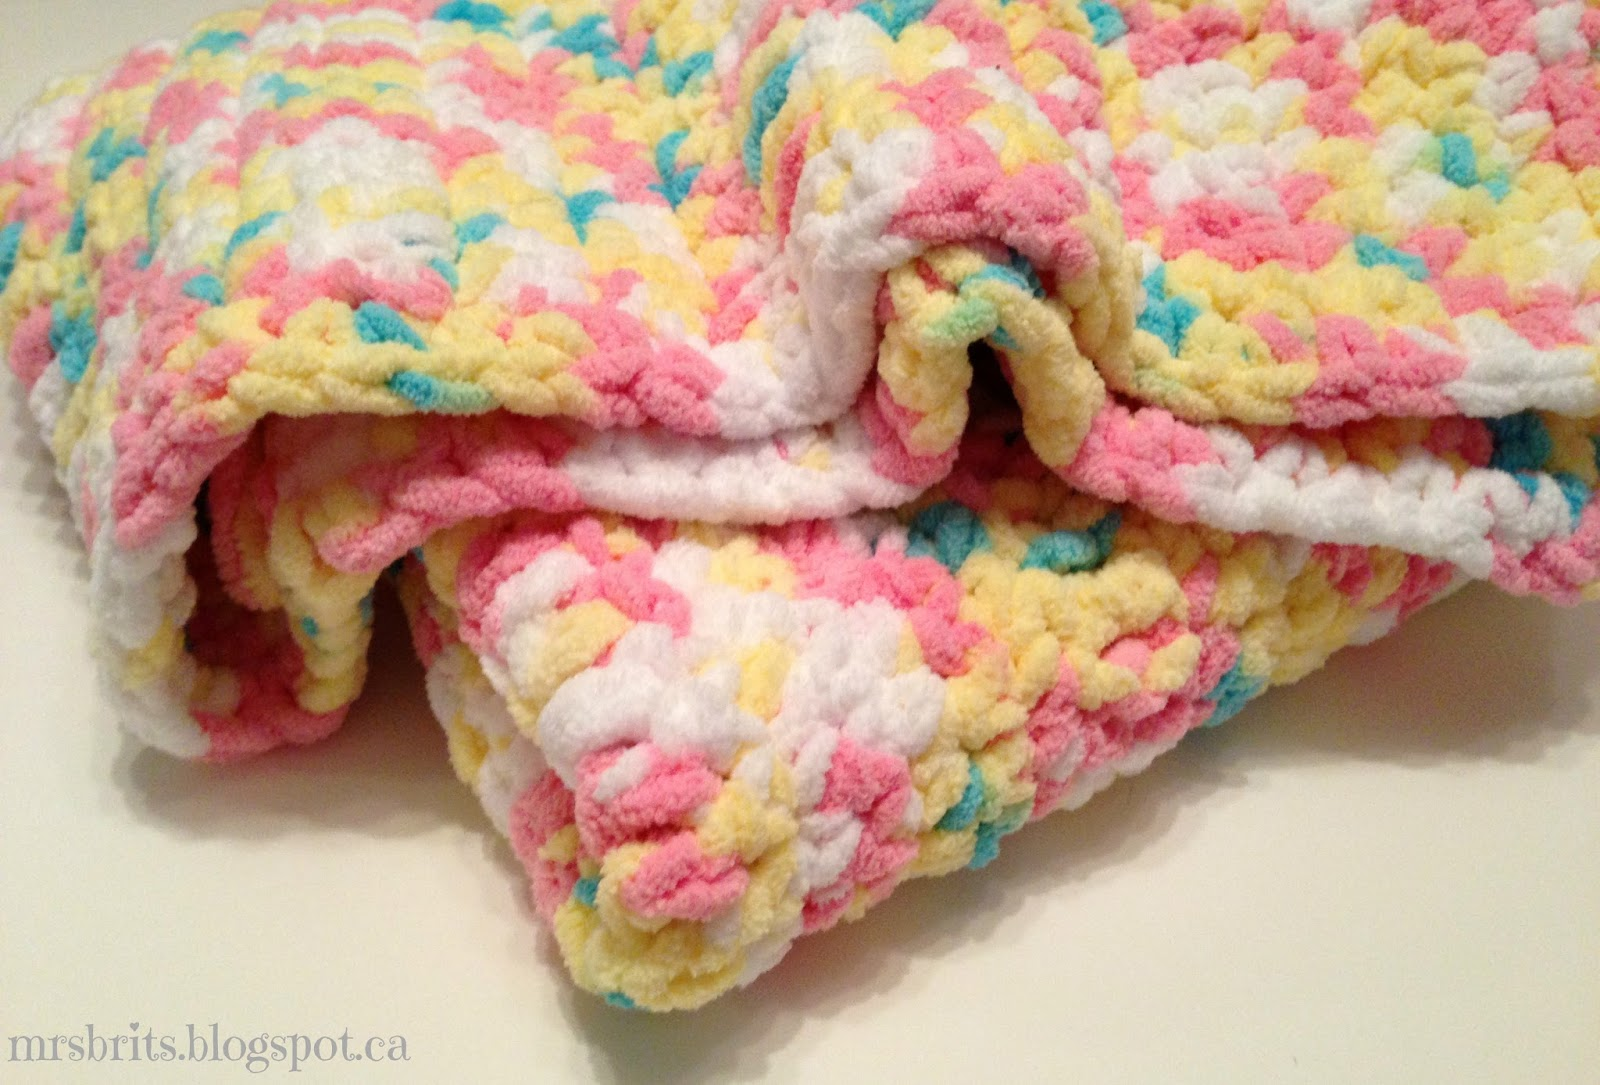 Crochet Patterns Using Bernat Blanket Yarn : MrsBrits: Sweet and Chunky Baby Afghan {Crochet Pattern}